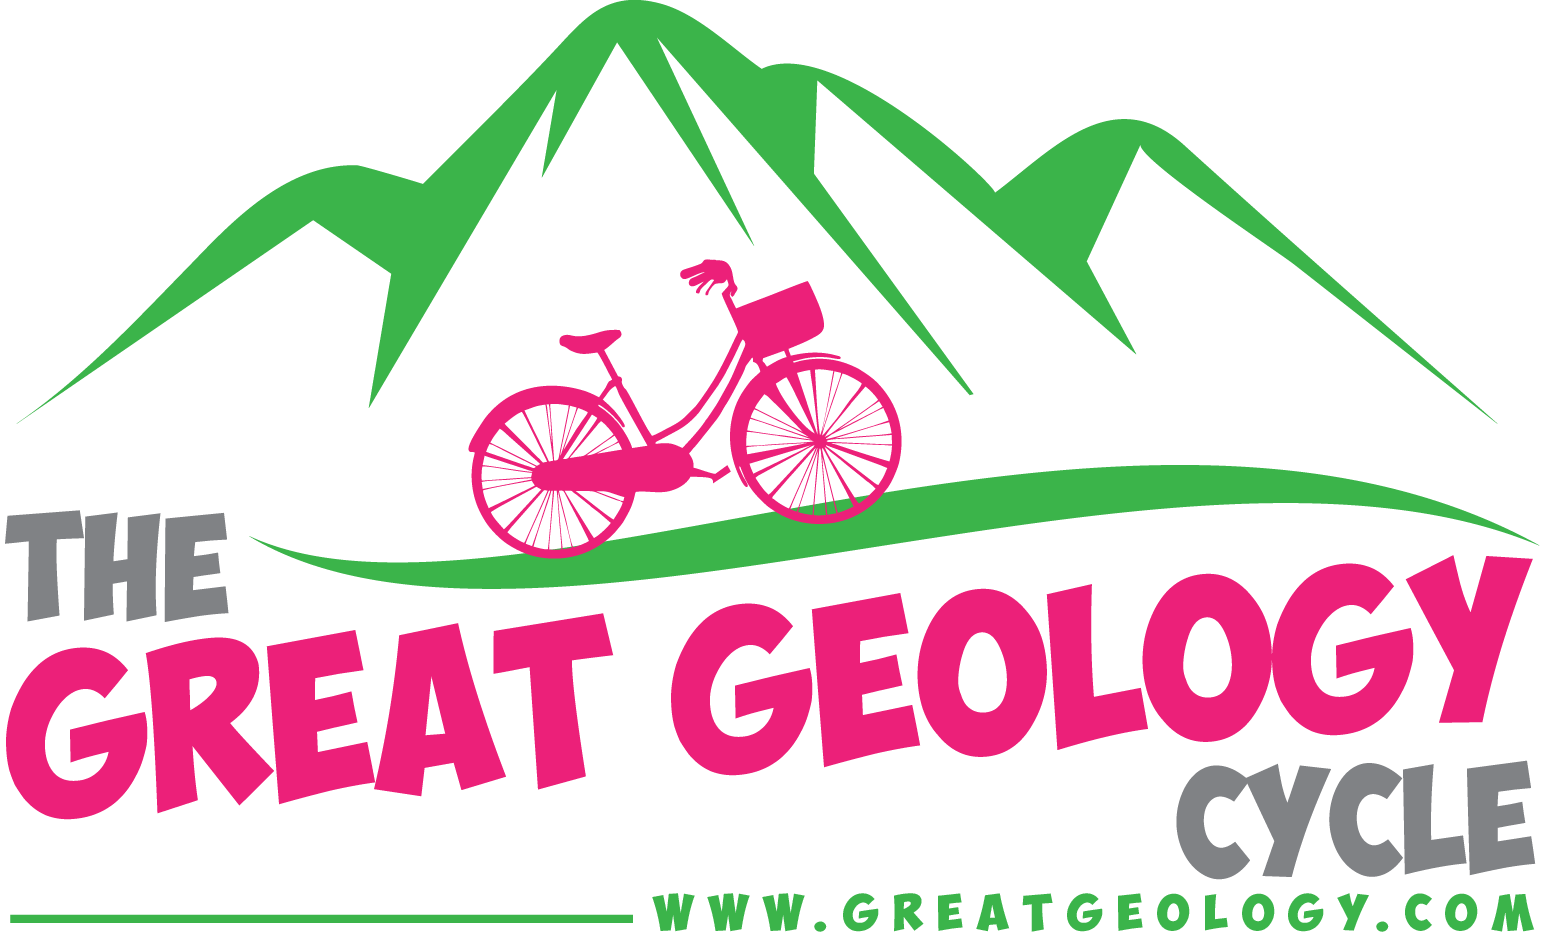 The Great Geology Cycle